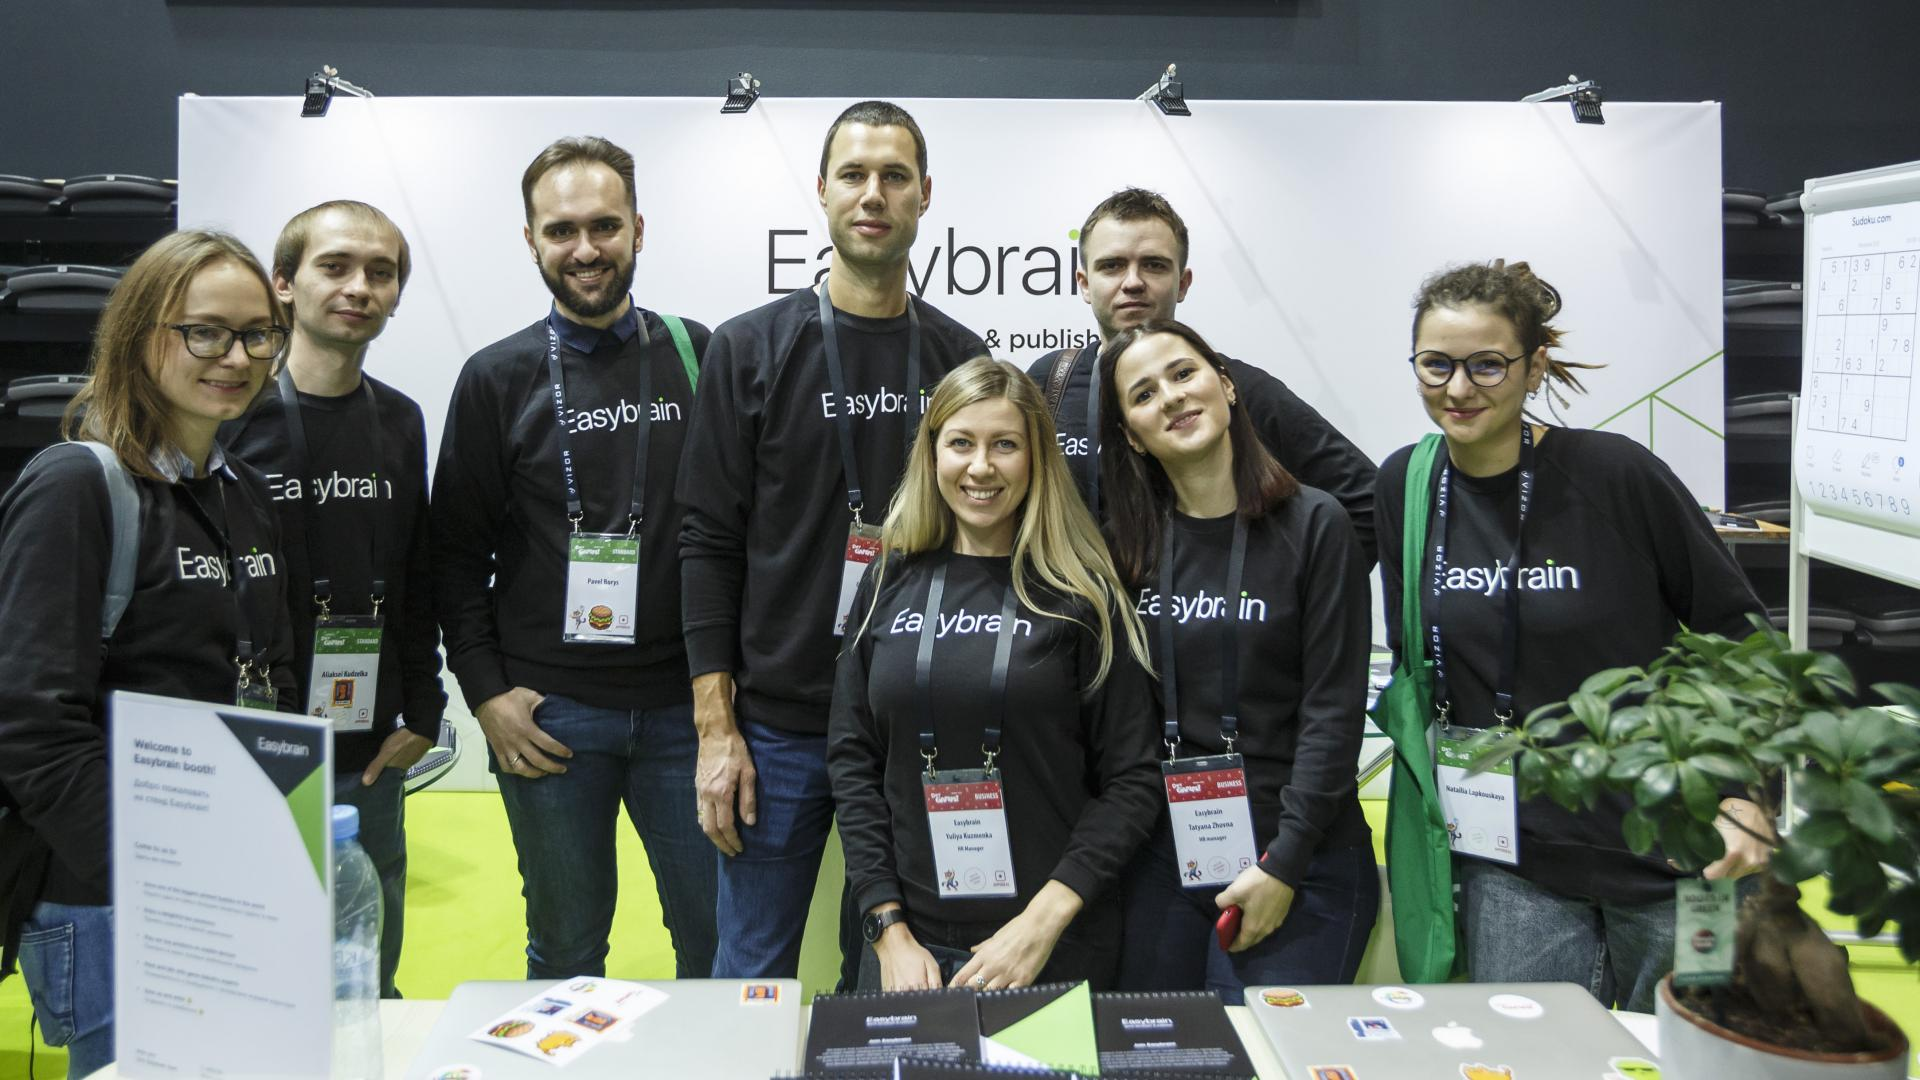 Easybrain team at DevGAMM Minsk 2018